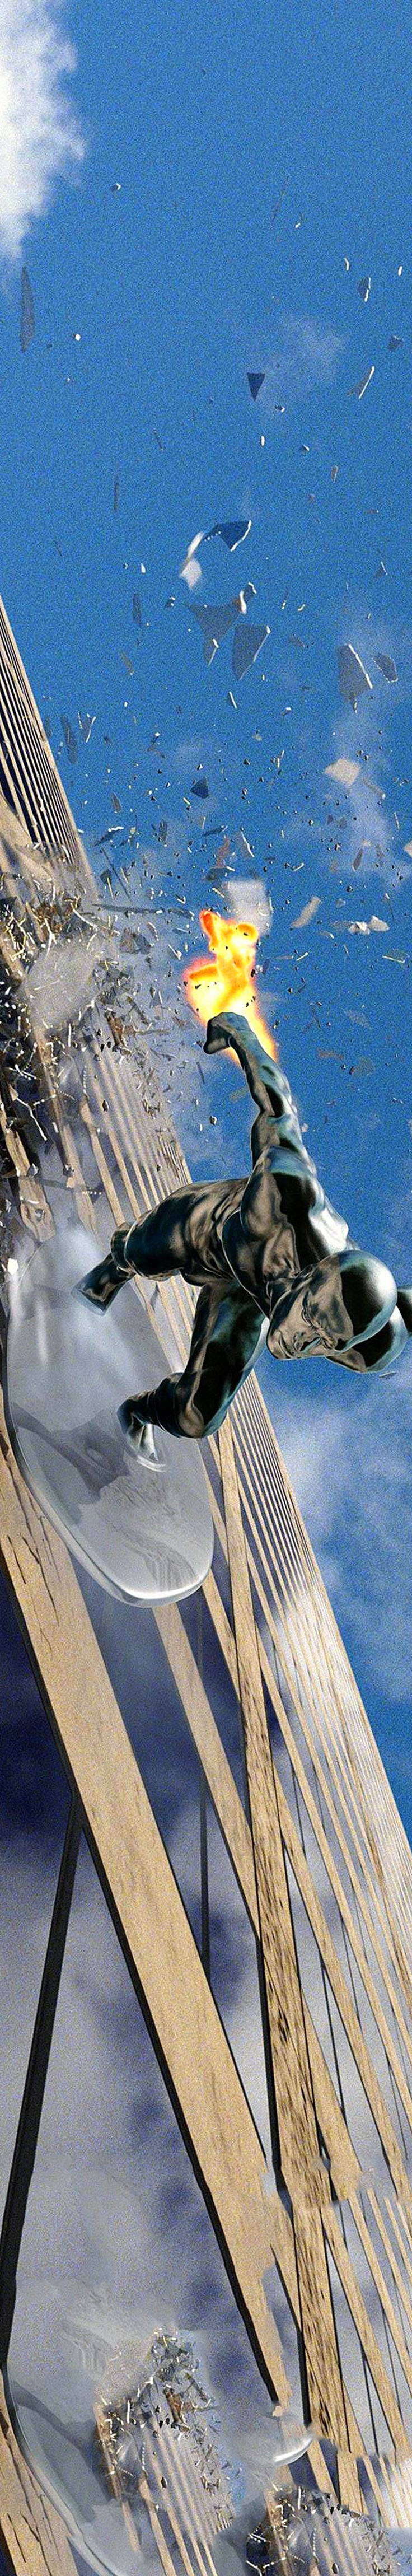 Silver Surfer - I used to imagine surfing this building when I lived in the city back in the 80's.    In the Rise of the Silver Surfer- The Fantastic Four 2007 the Silver Surfer drops in on the W.R. Grace Building at 1114 42nd Street btwn 5th & 6th Ave,